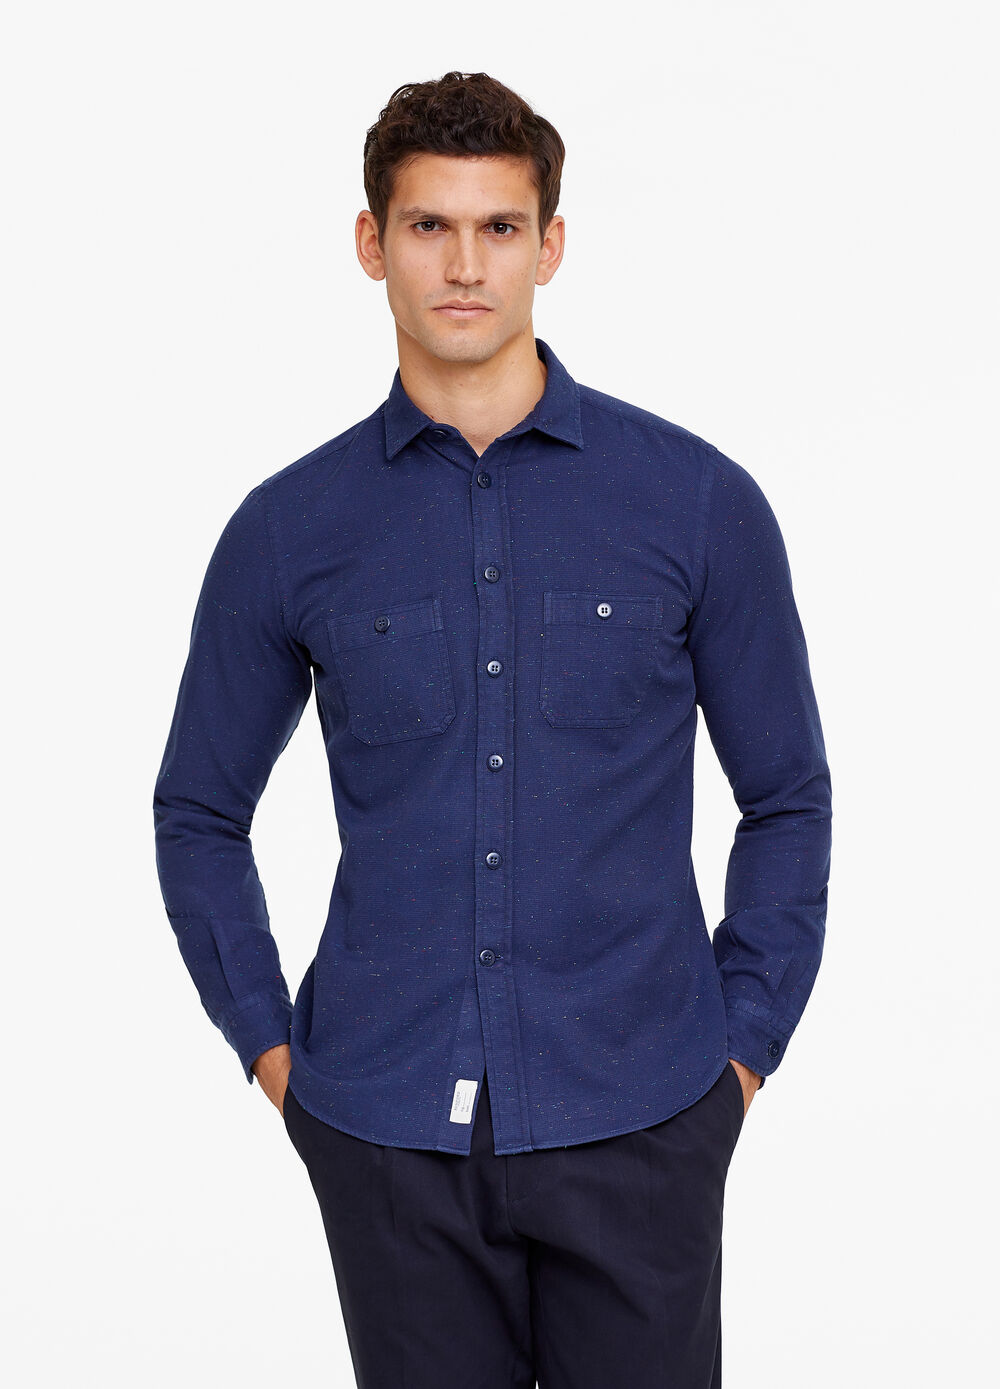 Rumford shirt with pocket